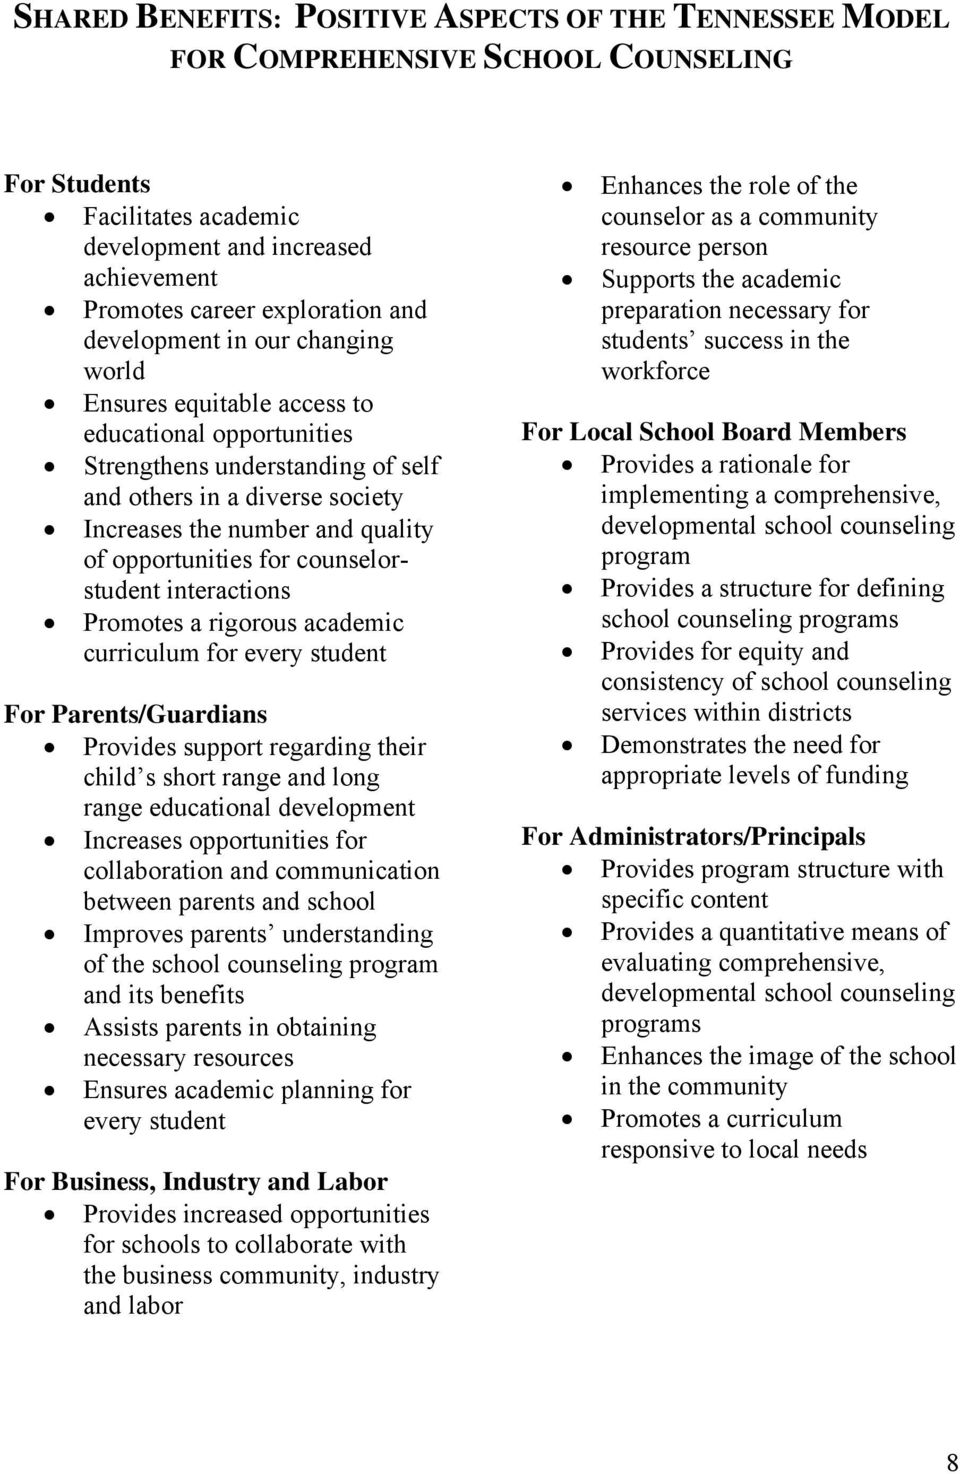 opportunities for counselorstudent interactions Promotes a rigorous academic curriculum for every student For Parents/Guardians Provides support regarding their child s short range and long range